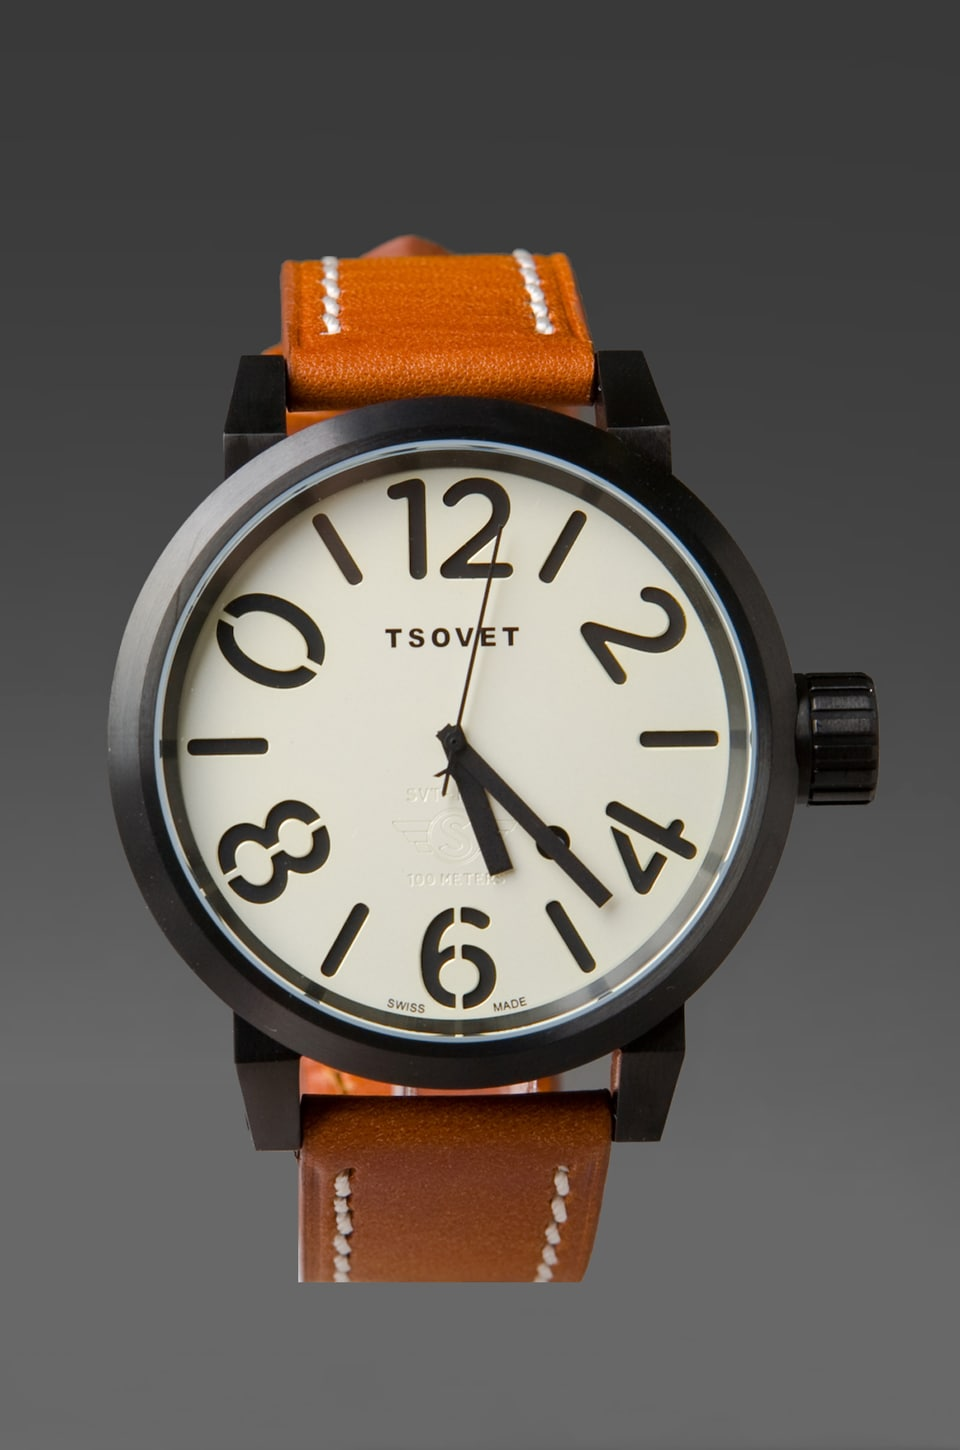 Tsovet SVT-LX73 in Brown/Black